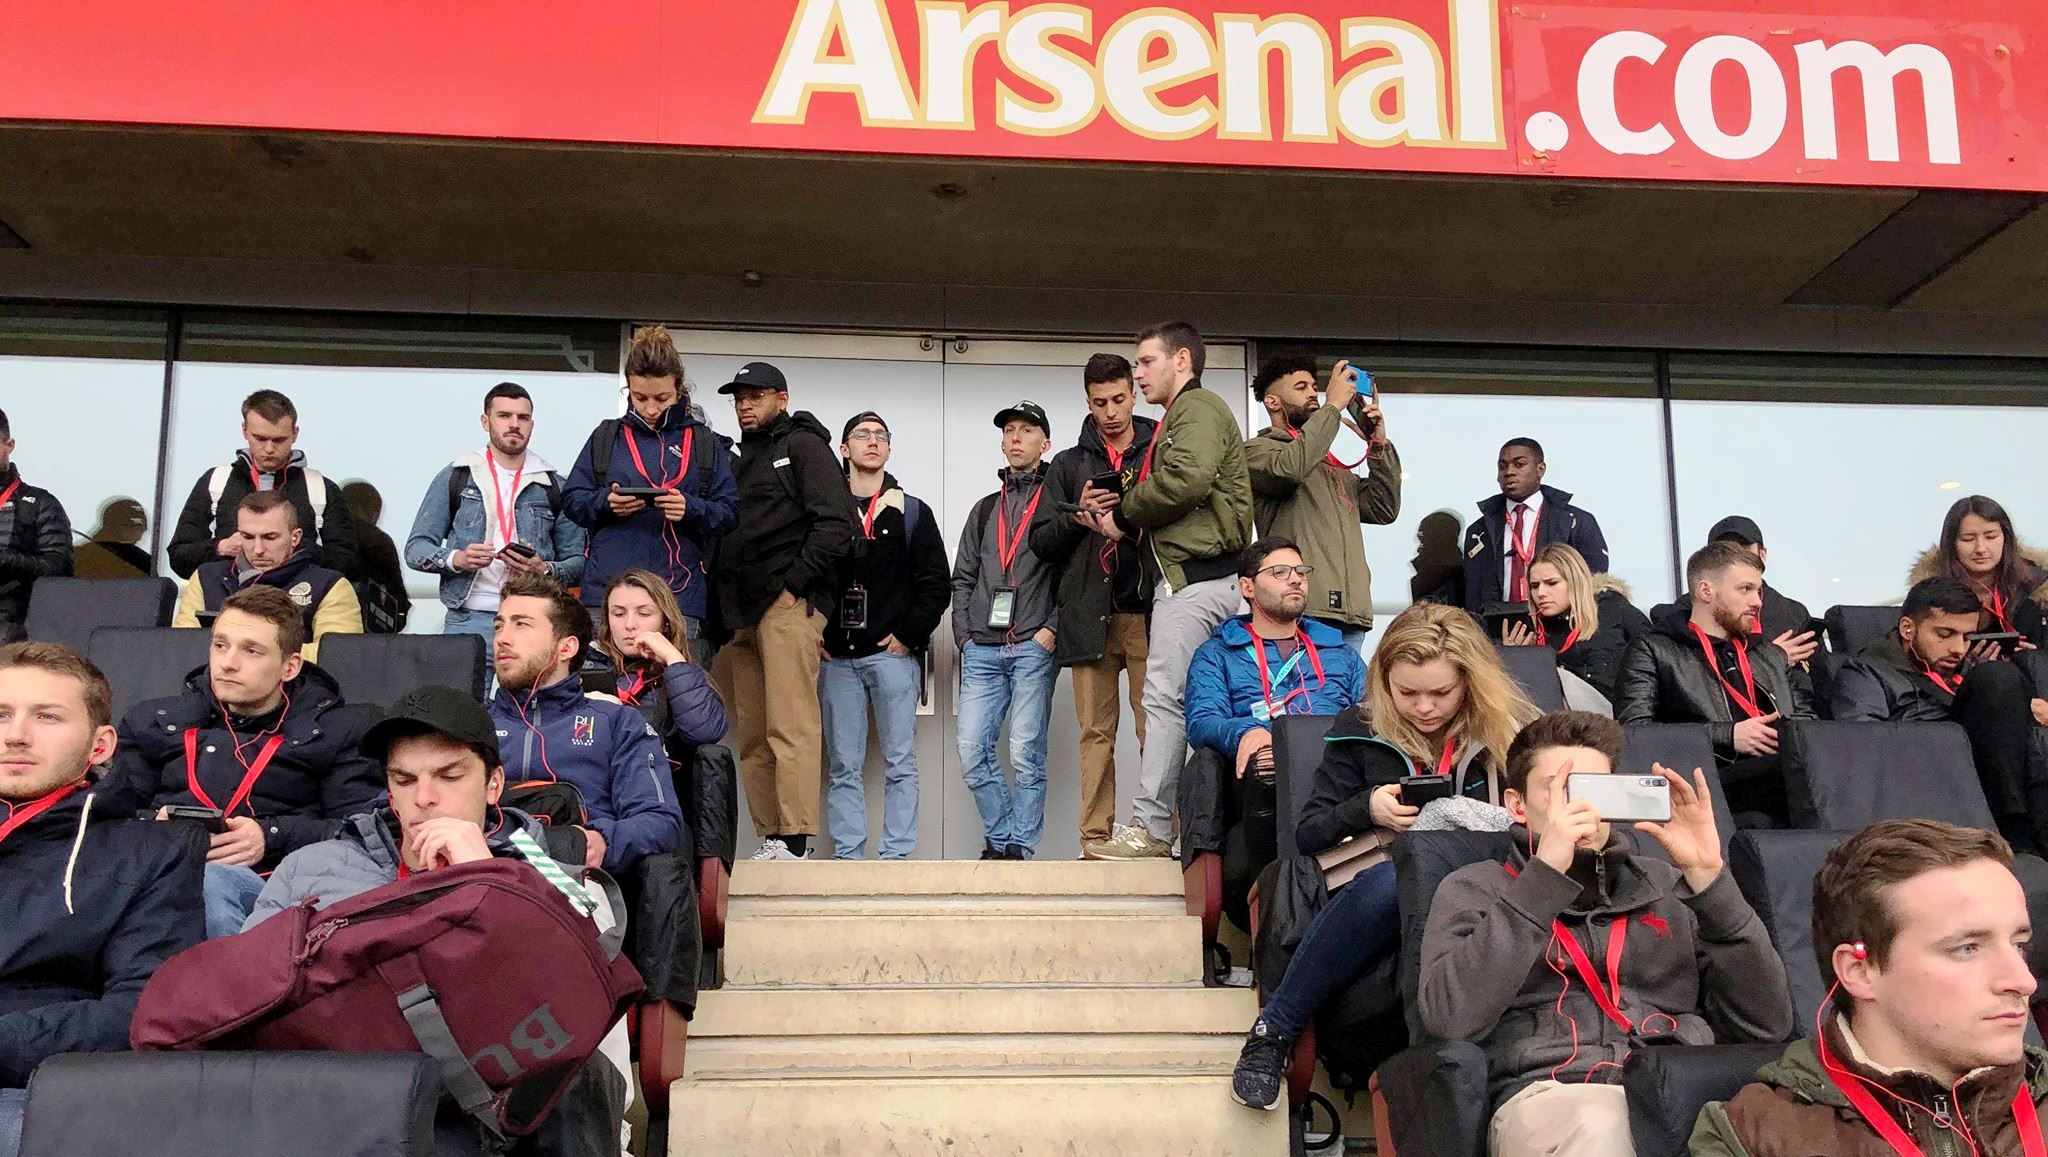 20190408 ILEPS London Emirates Stadium 4